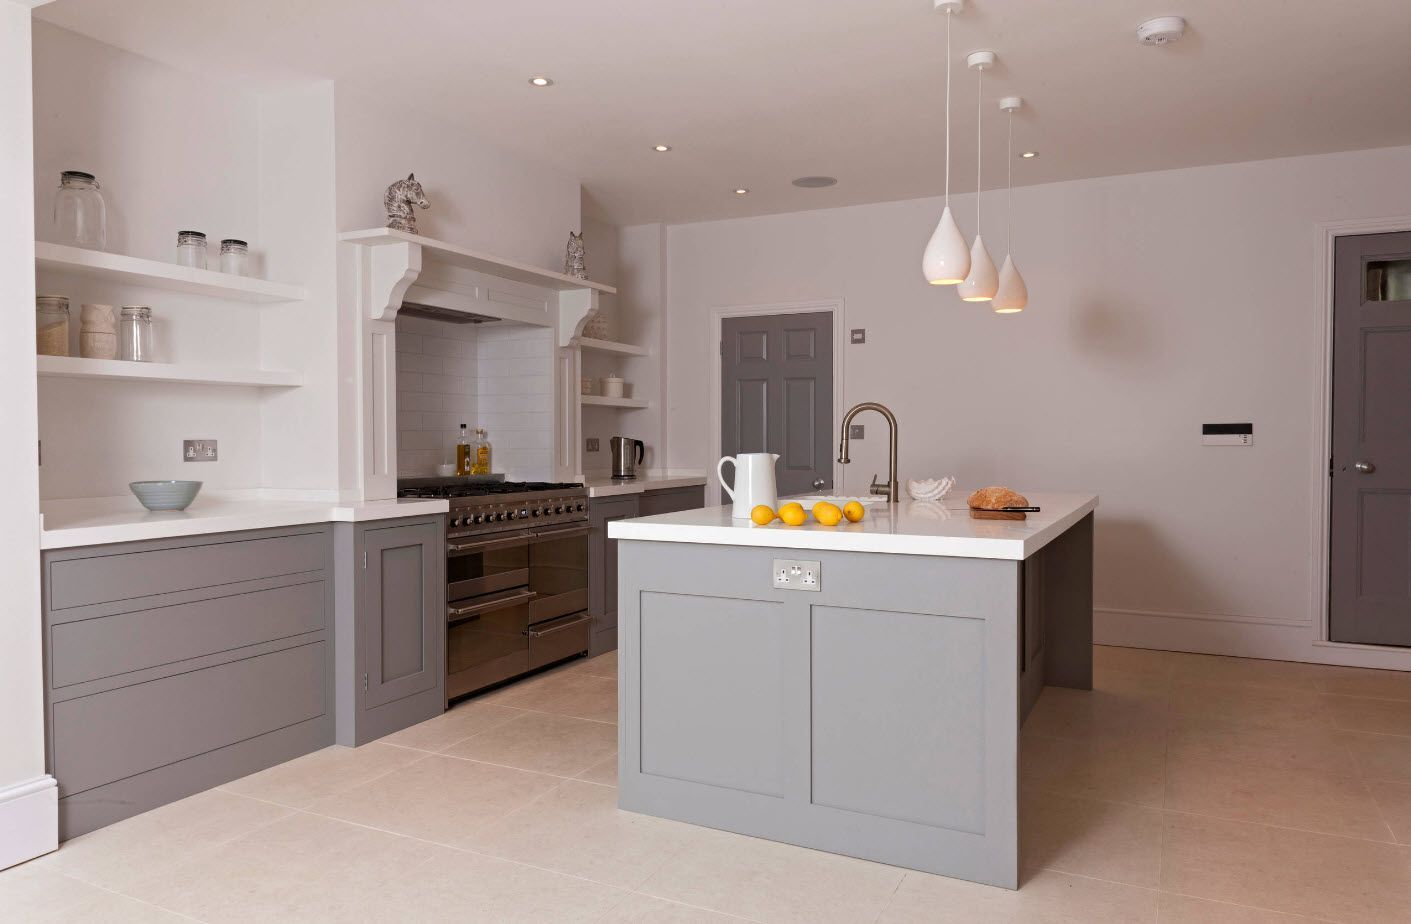 Steel gray color in the lowest middle of the kitchen